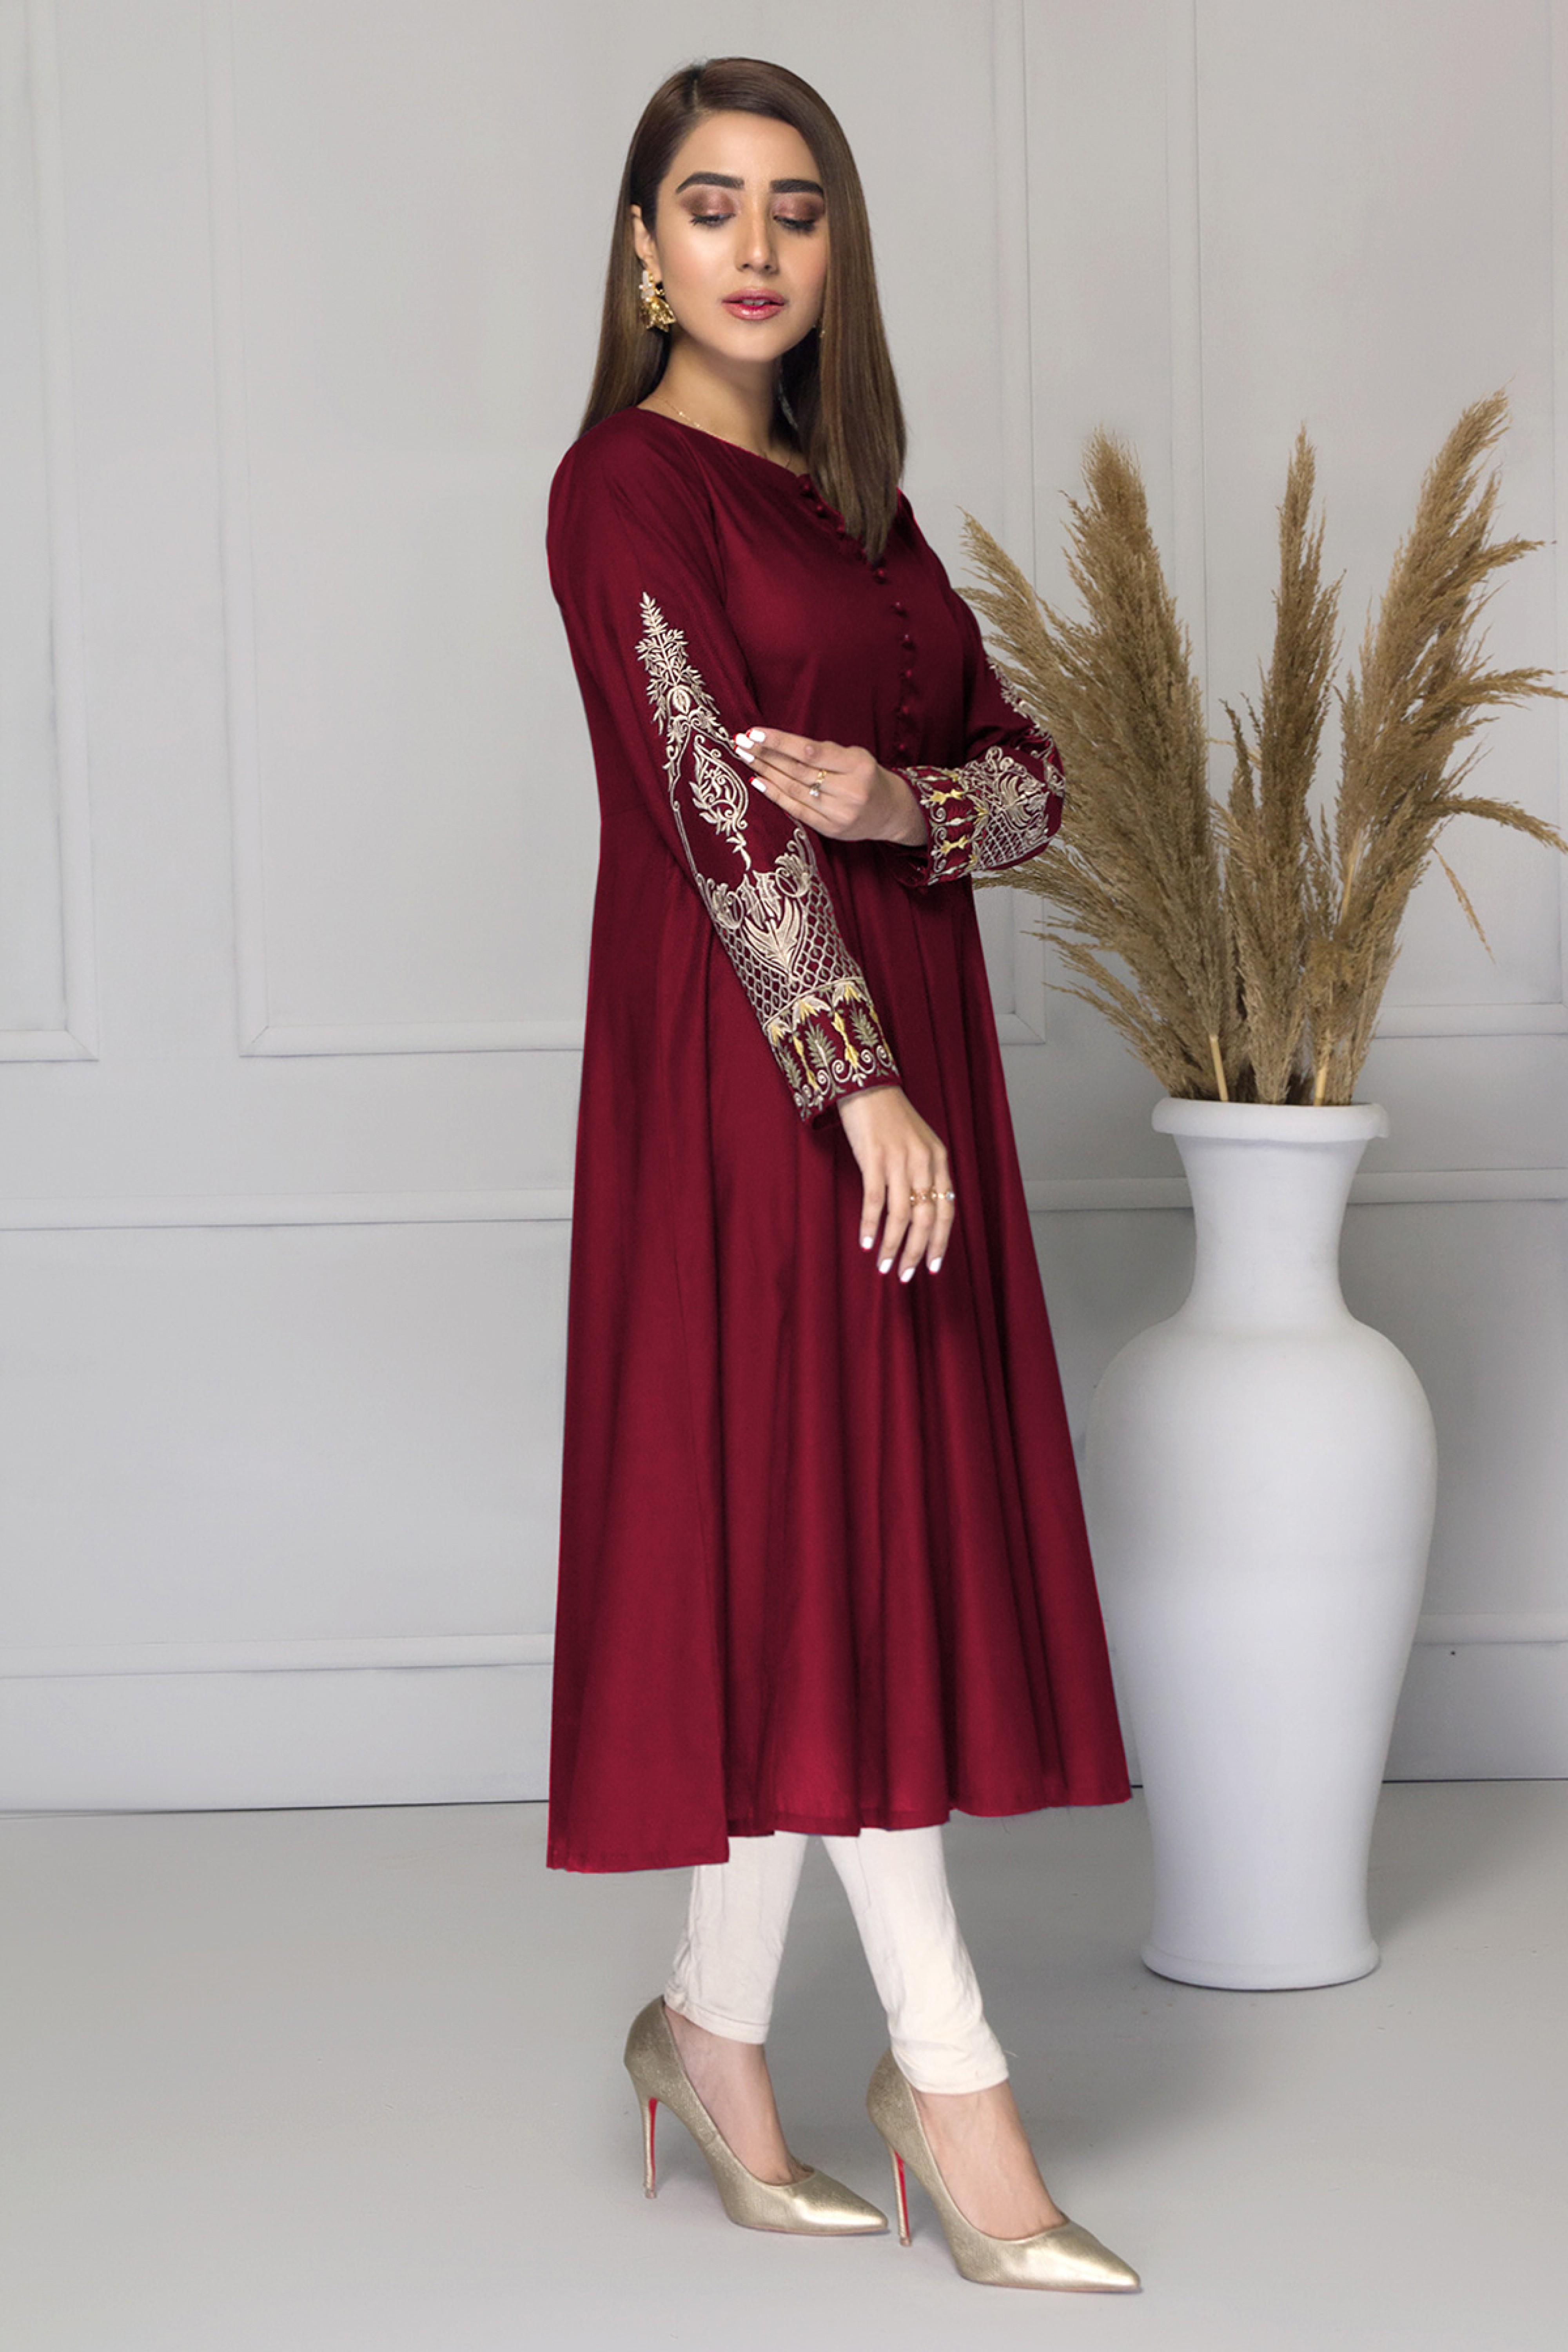 MARIGOLD(Embroidered Frock)